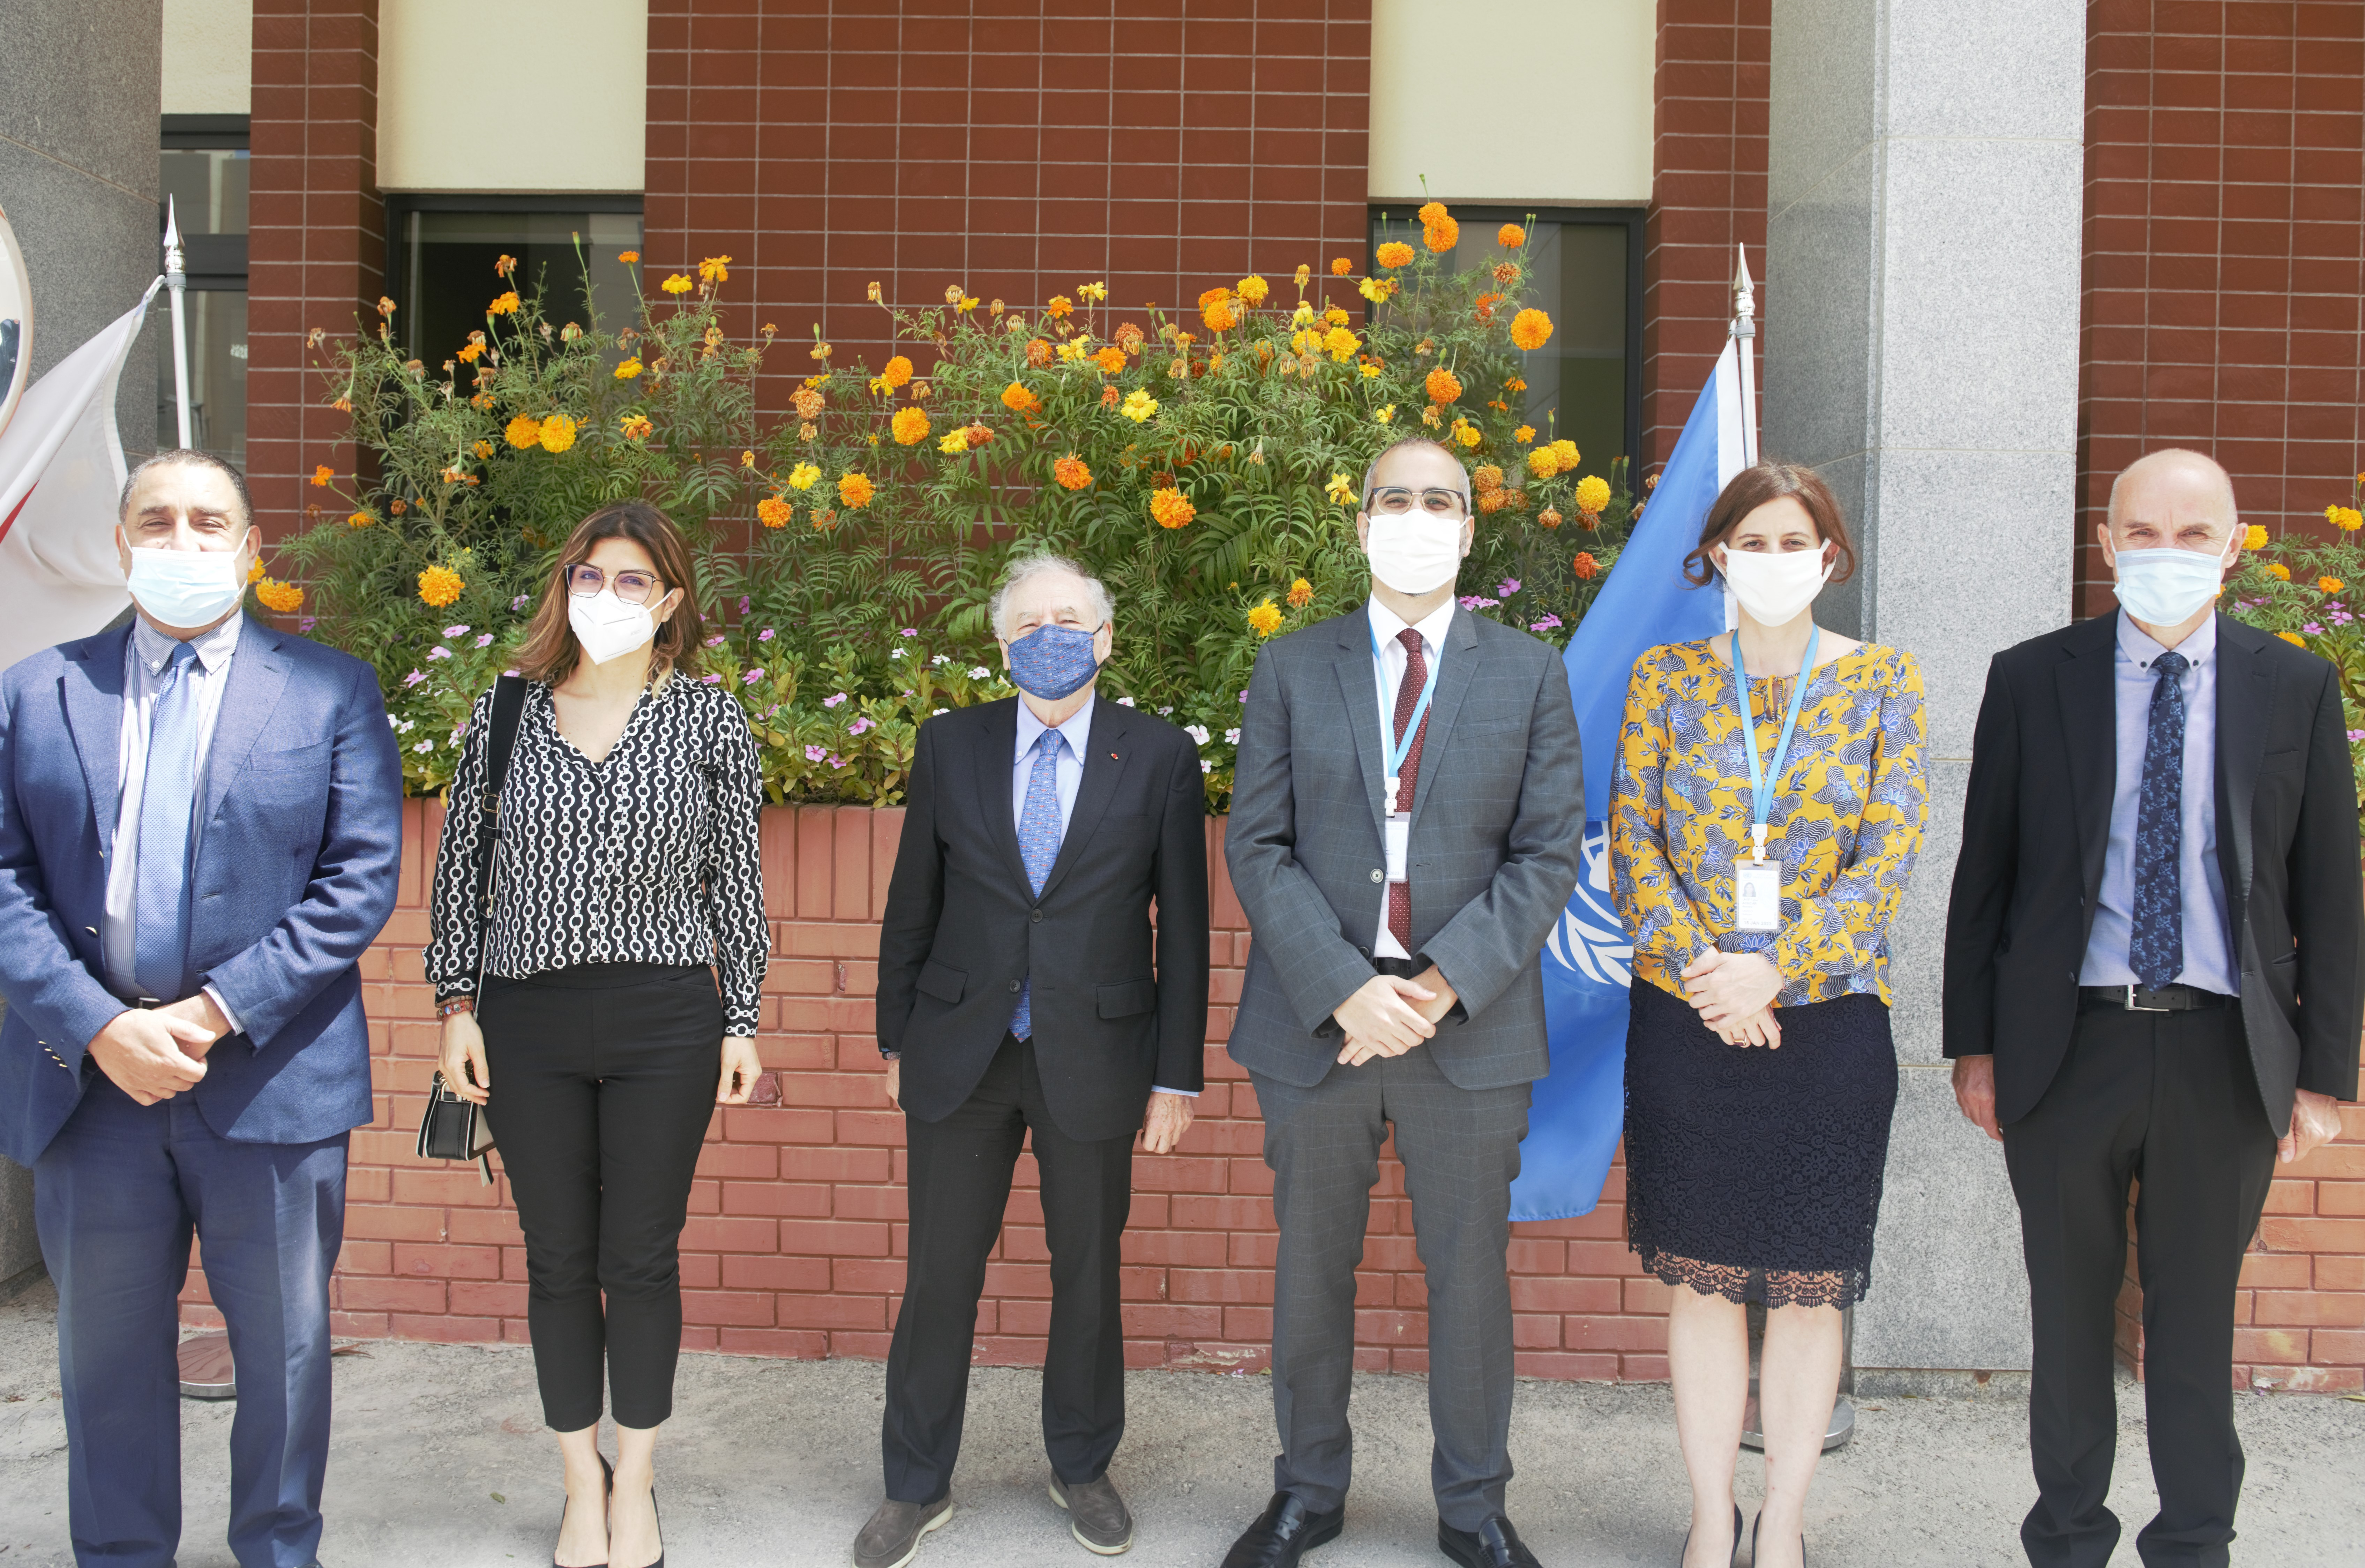 UN Special Envoy for Road Safety visits UN House in Bahrain